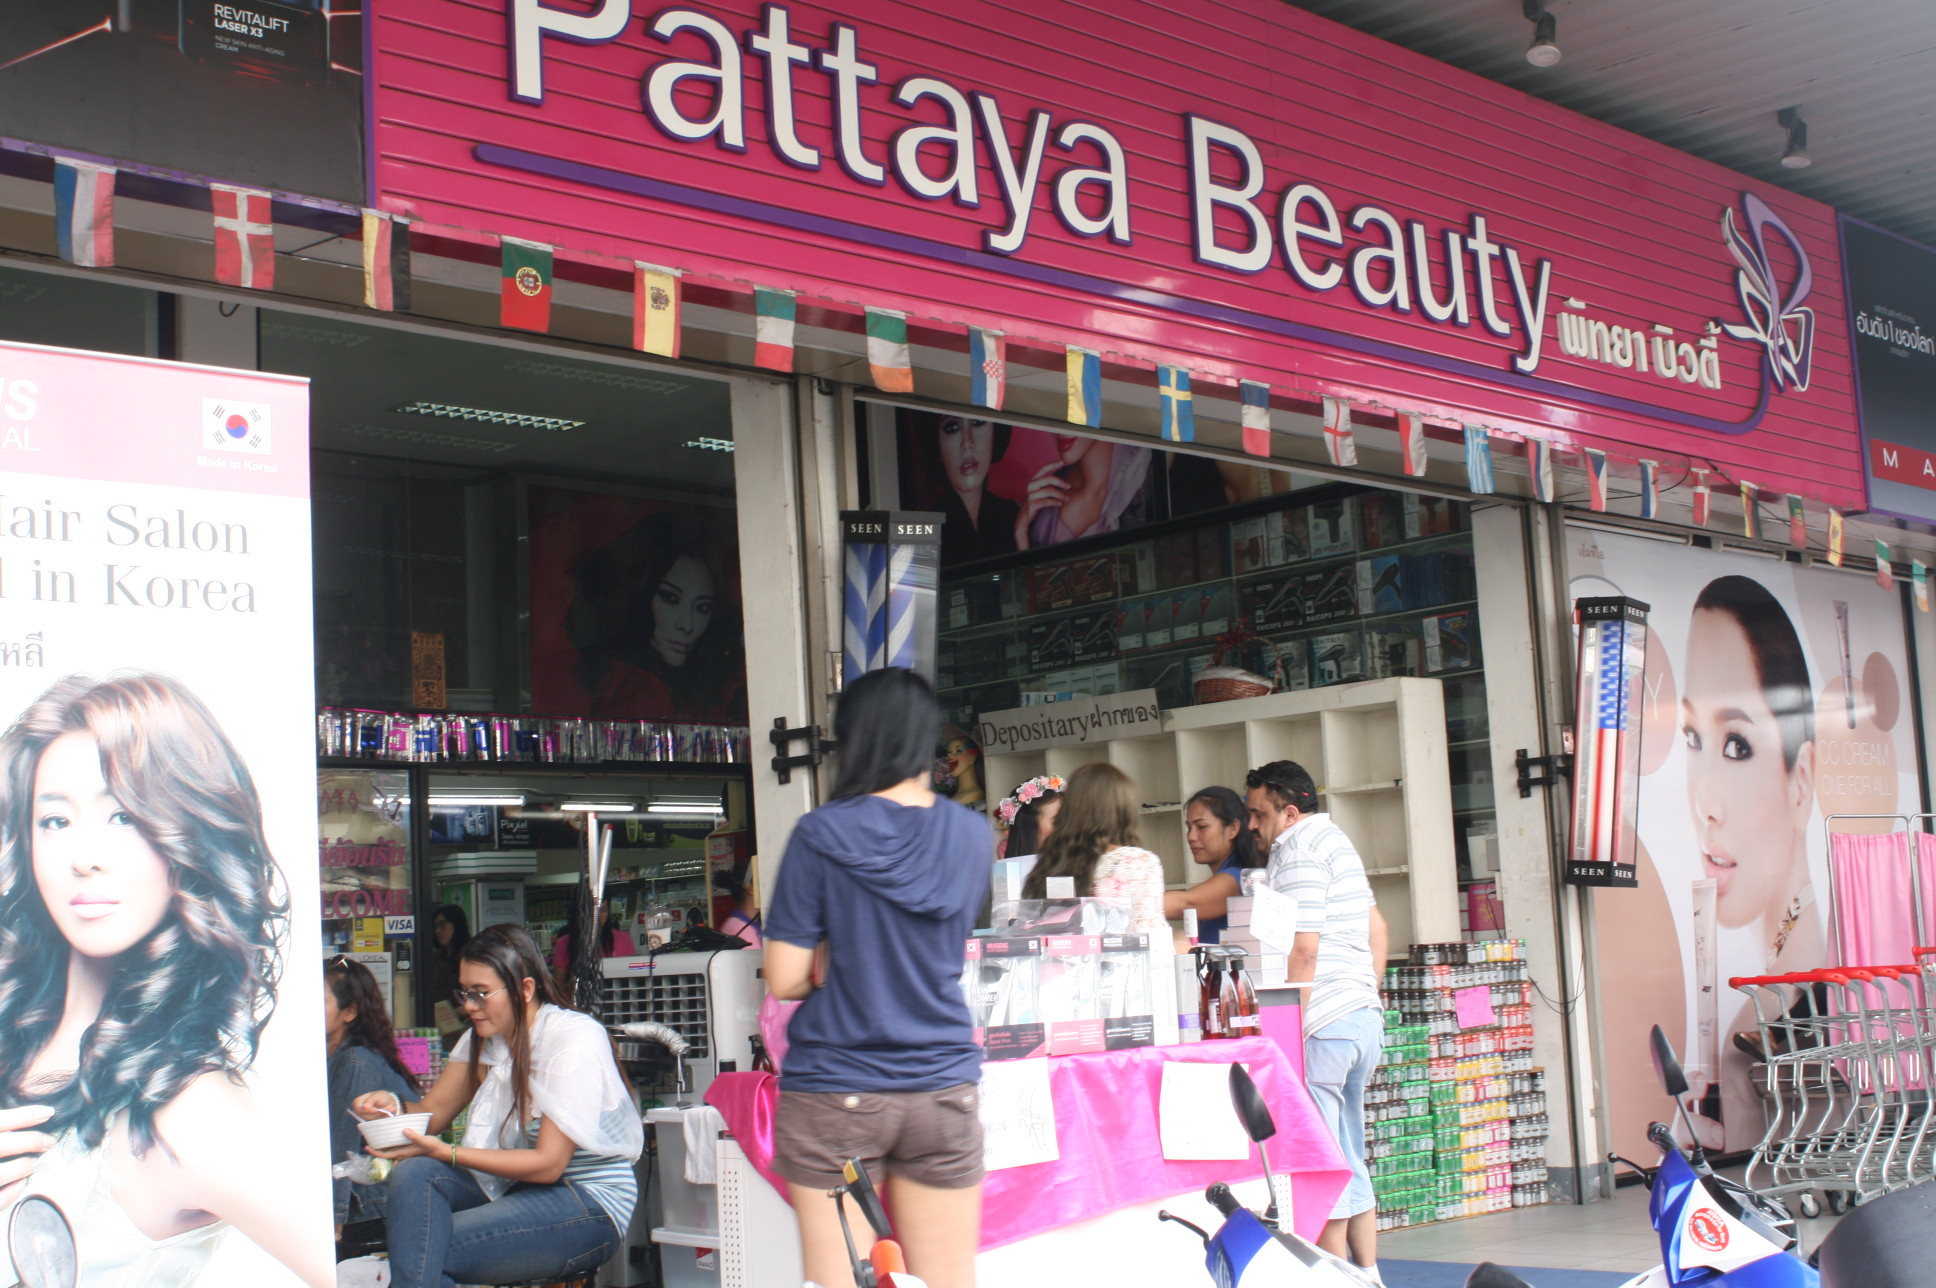 Pattaya beauty